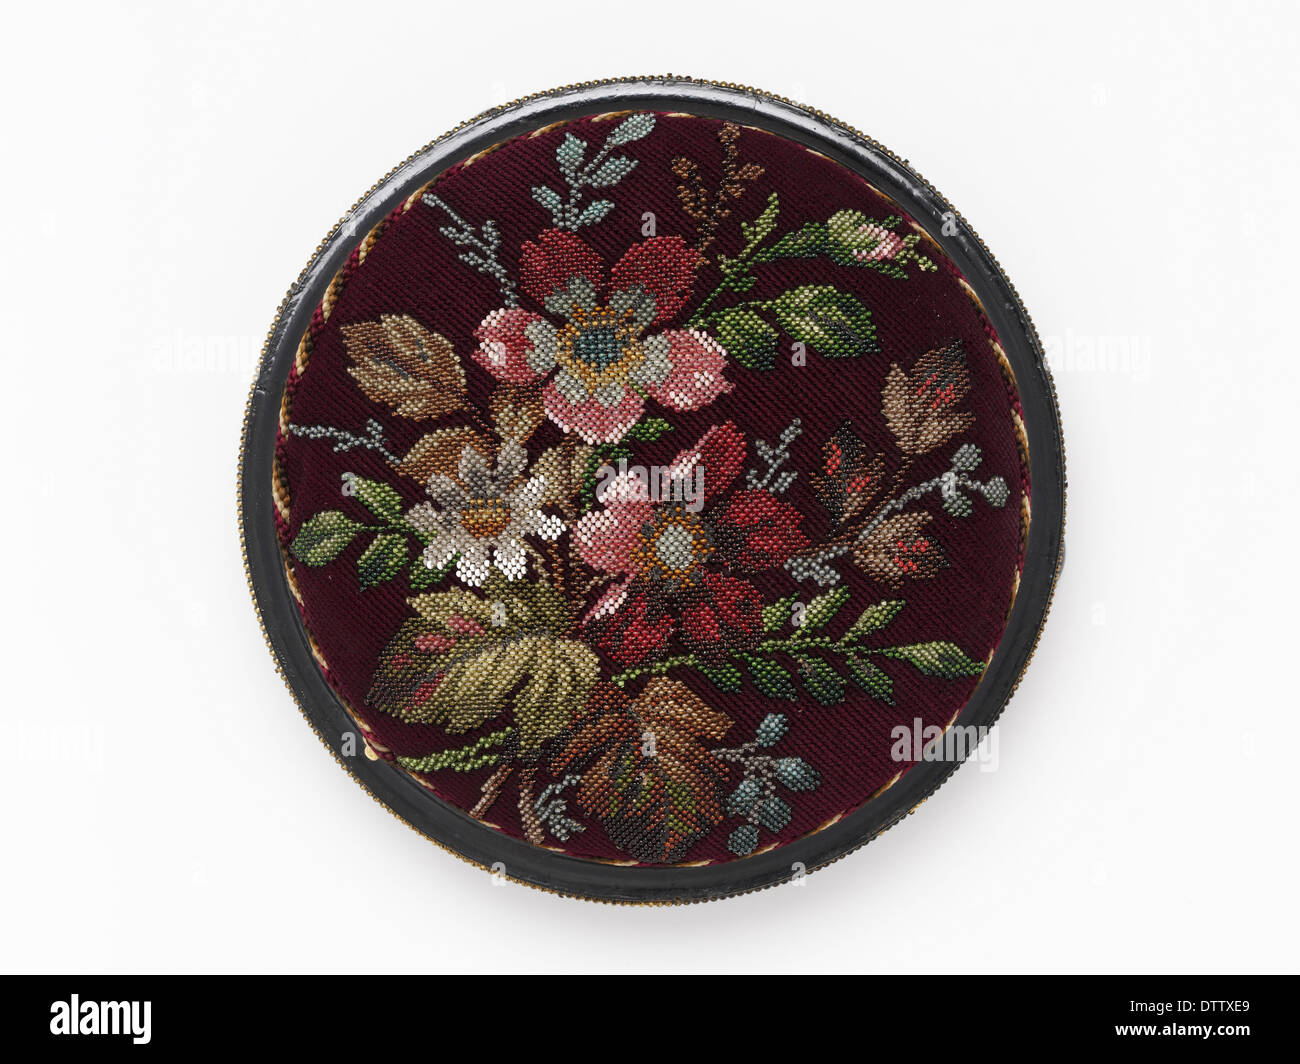 Footstool with detachable floral beaded needlework cushion, c.1850-1900. - Stock Image